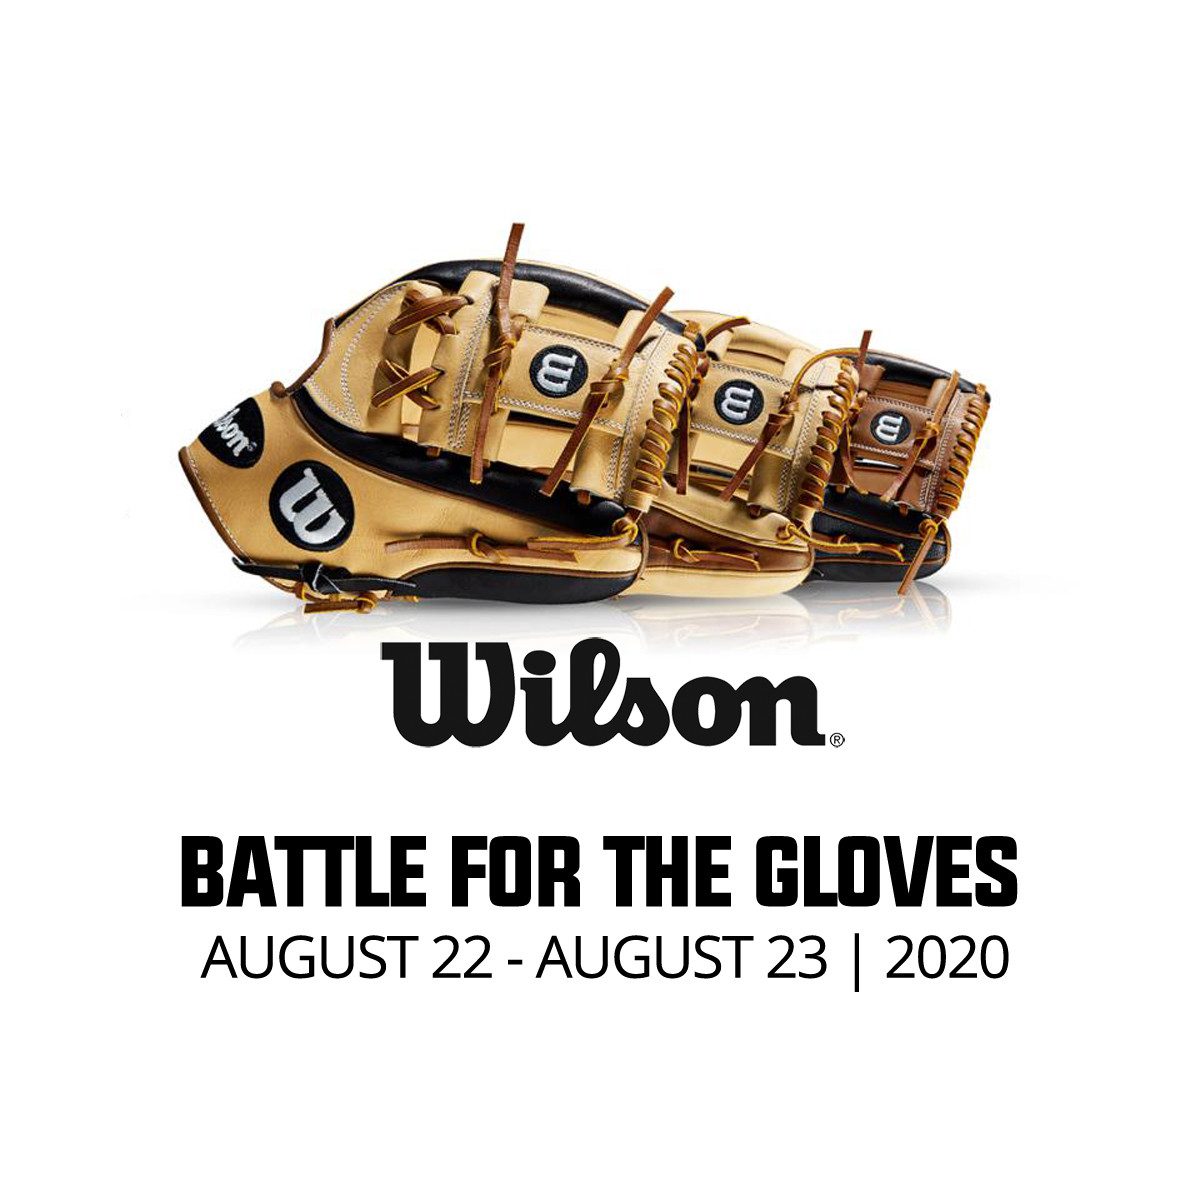 UPSTATE - BATTLE FOR THE GLOVES